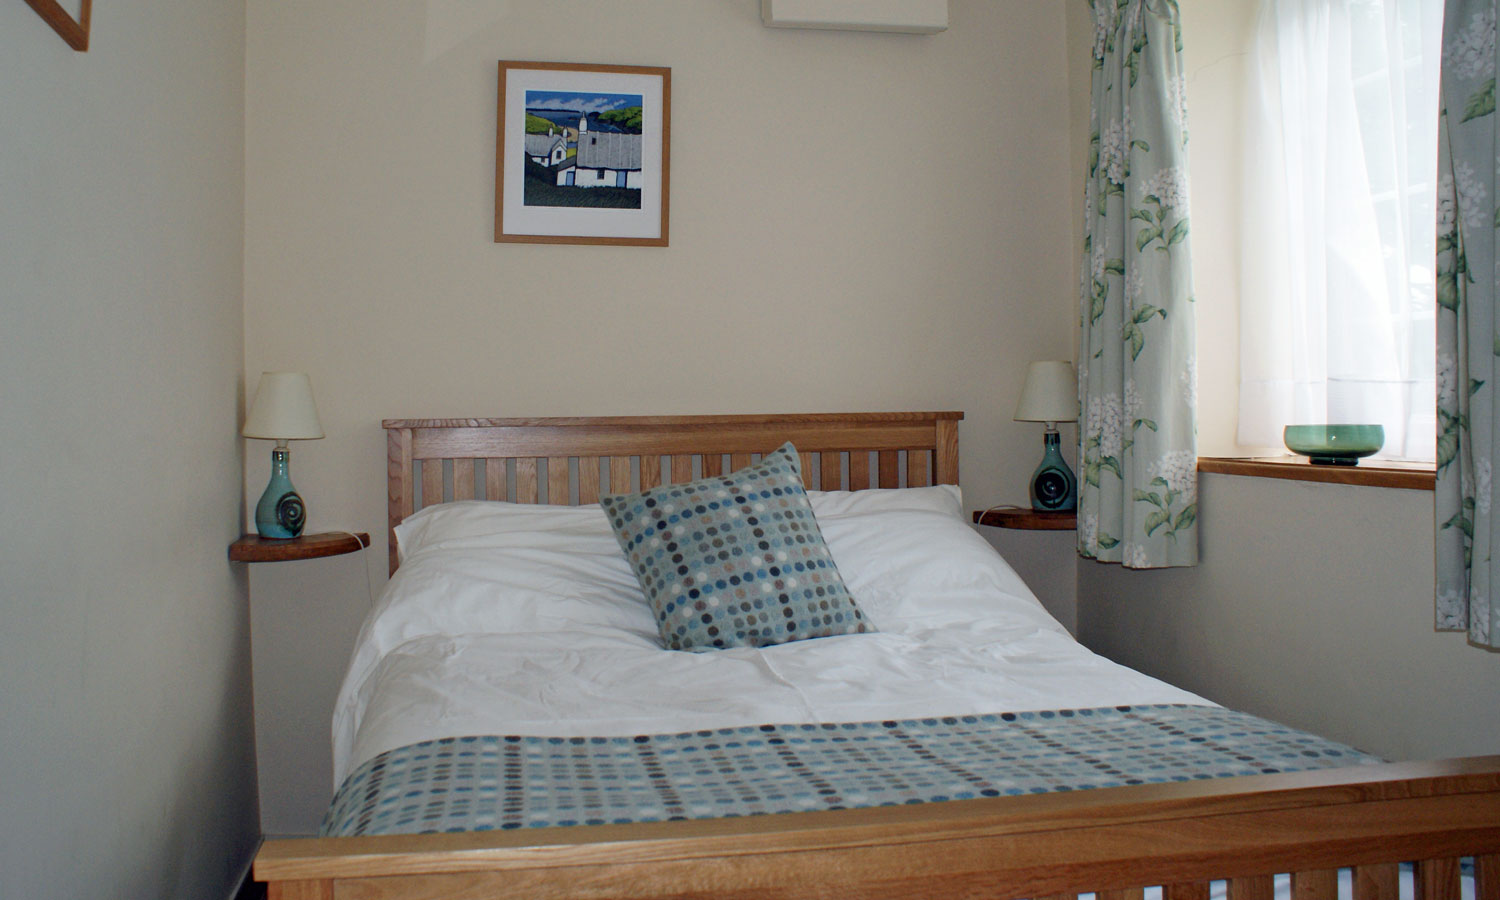 Double bed in Eynons Holiday Cottage with local Melyn Ty Gwynt throw and pillow